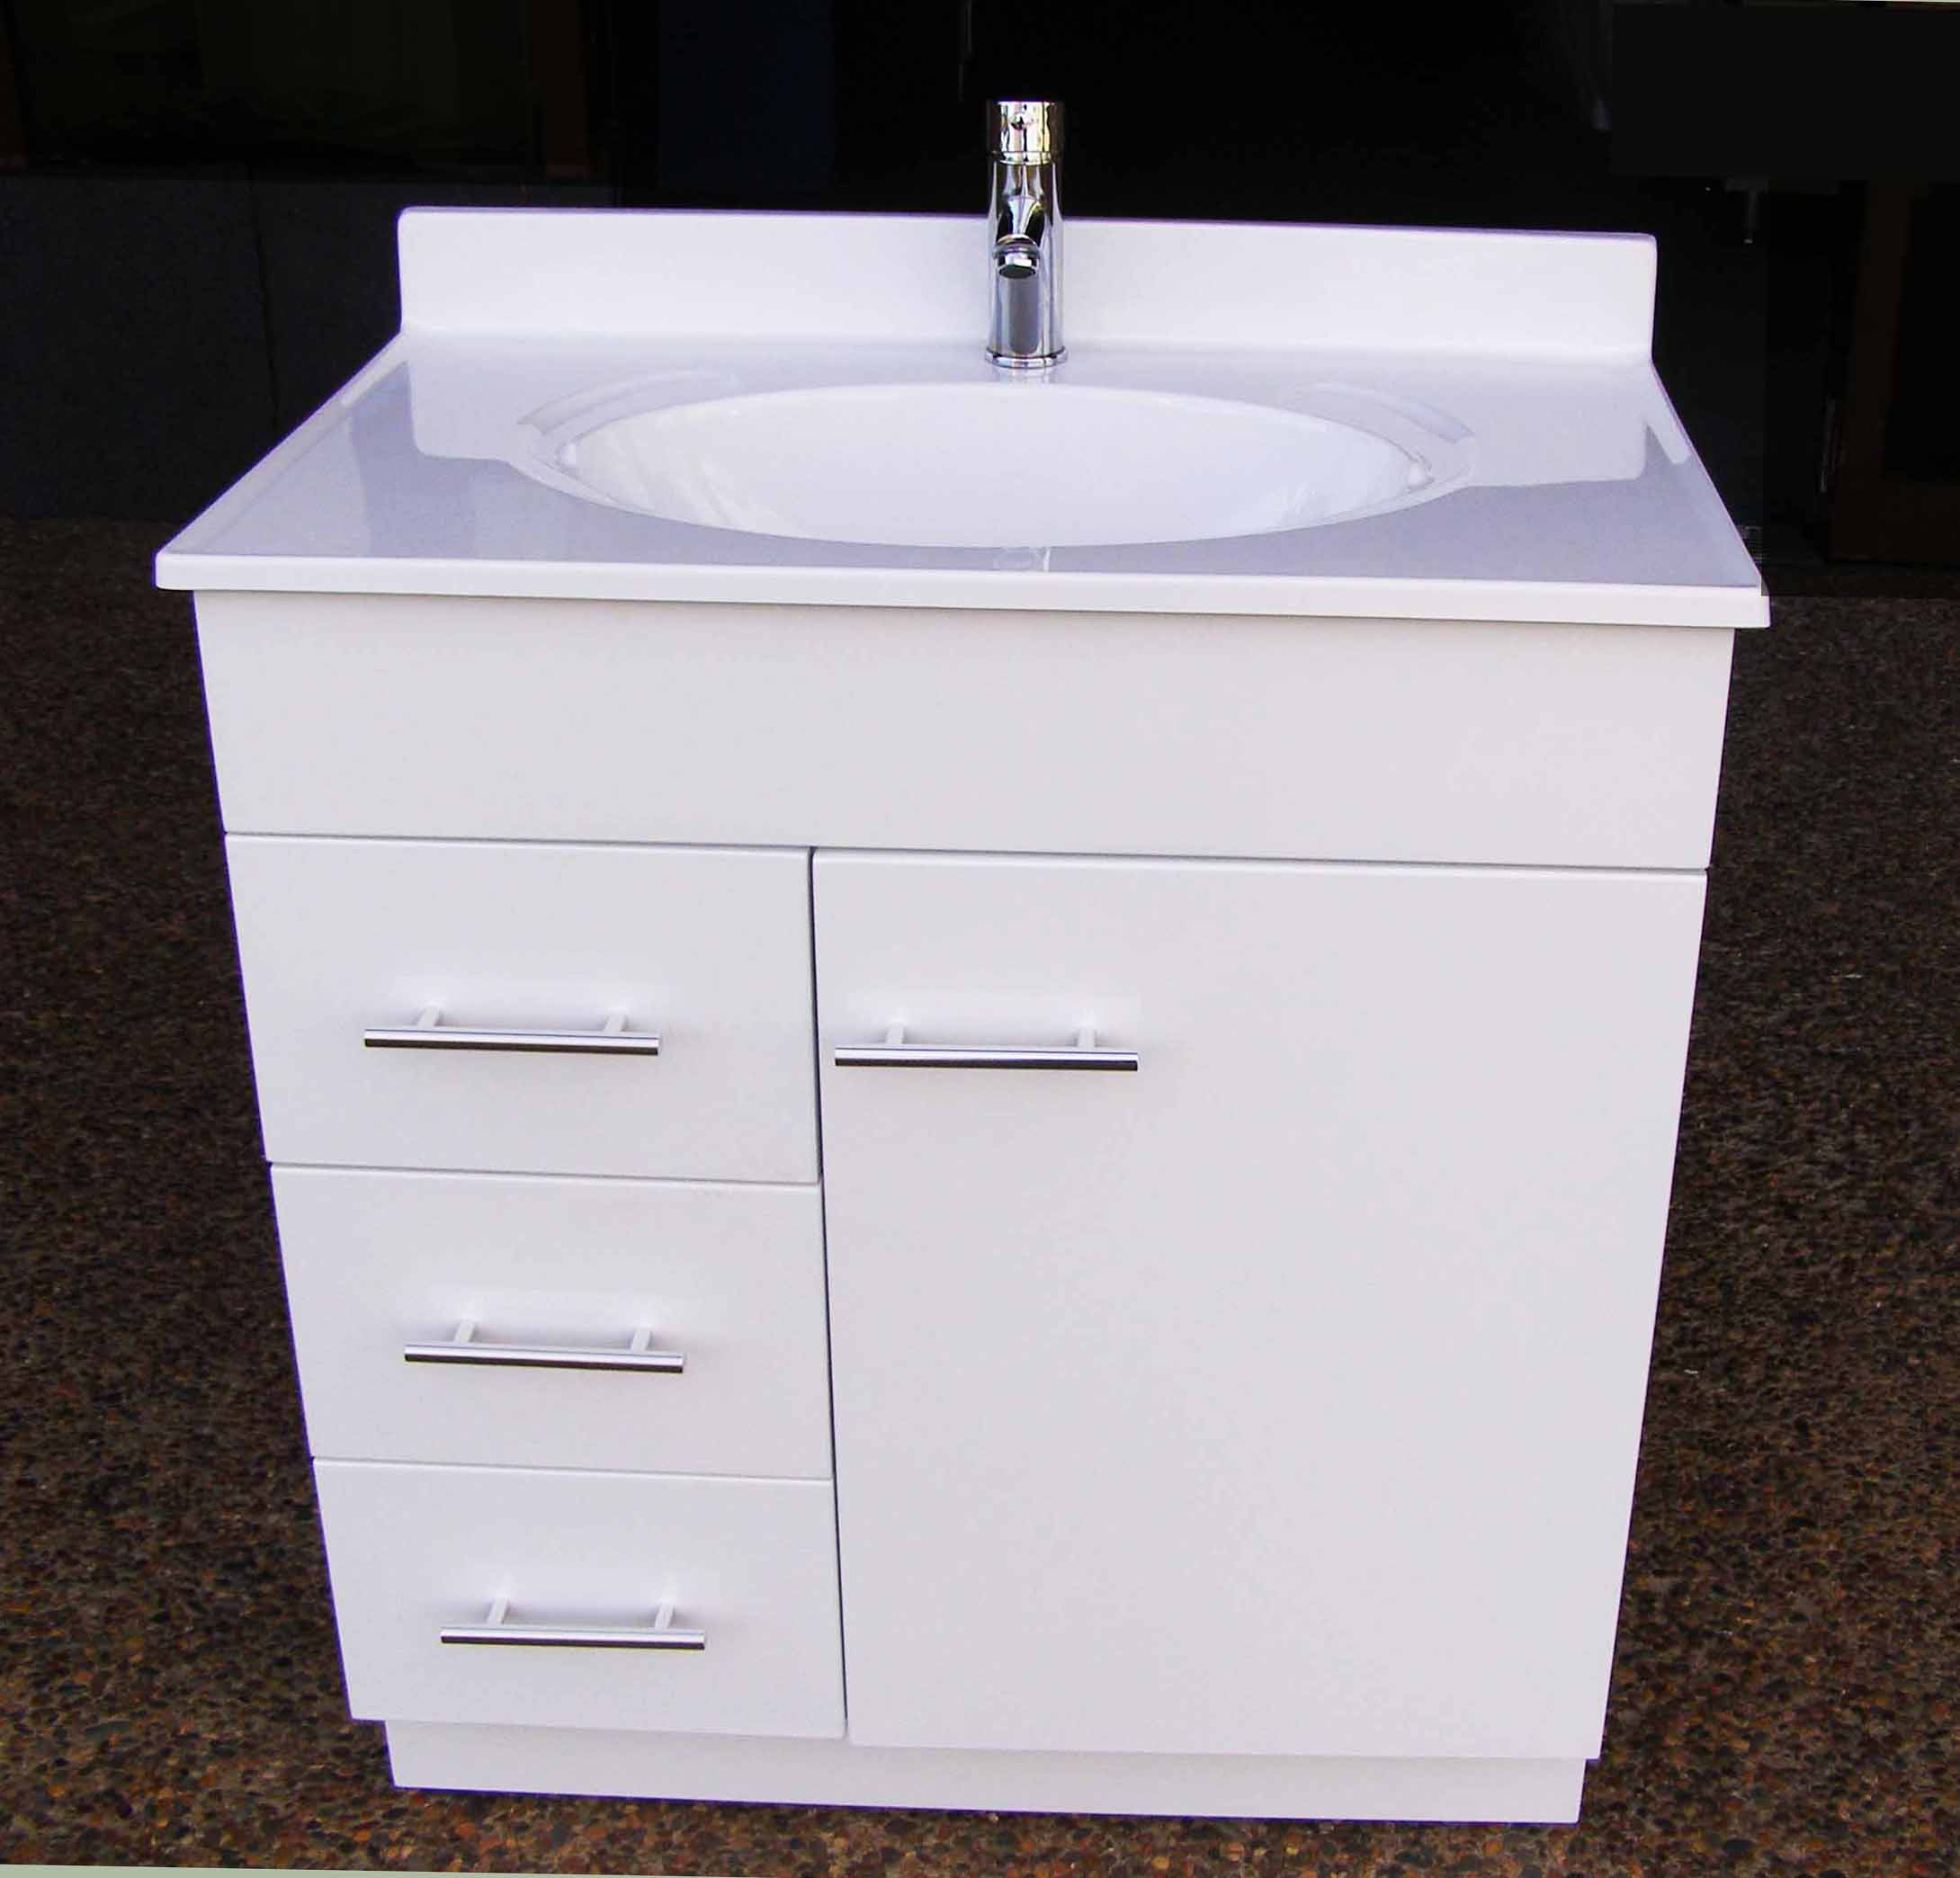 Fantastic Quadro Bathroom Vanities  Classique Vanities 07 3804 3344